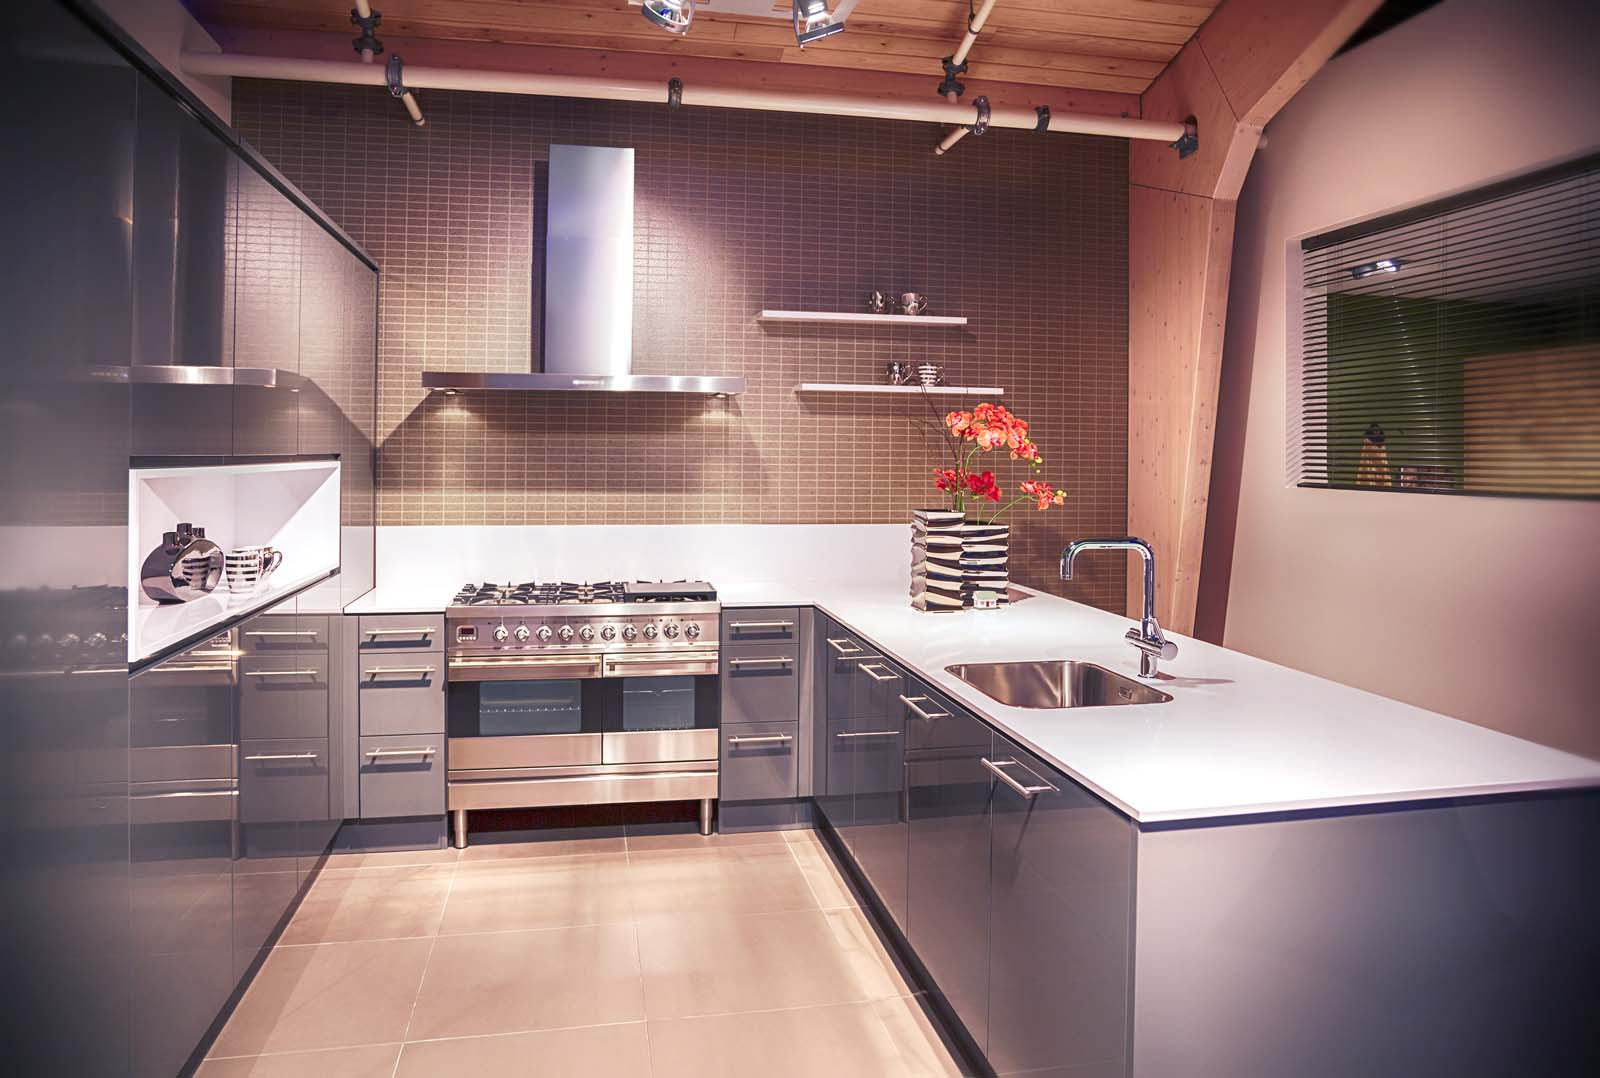 4 Tactics to a Financially Fruitful Kitchen Remodel